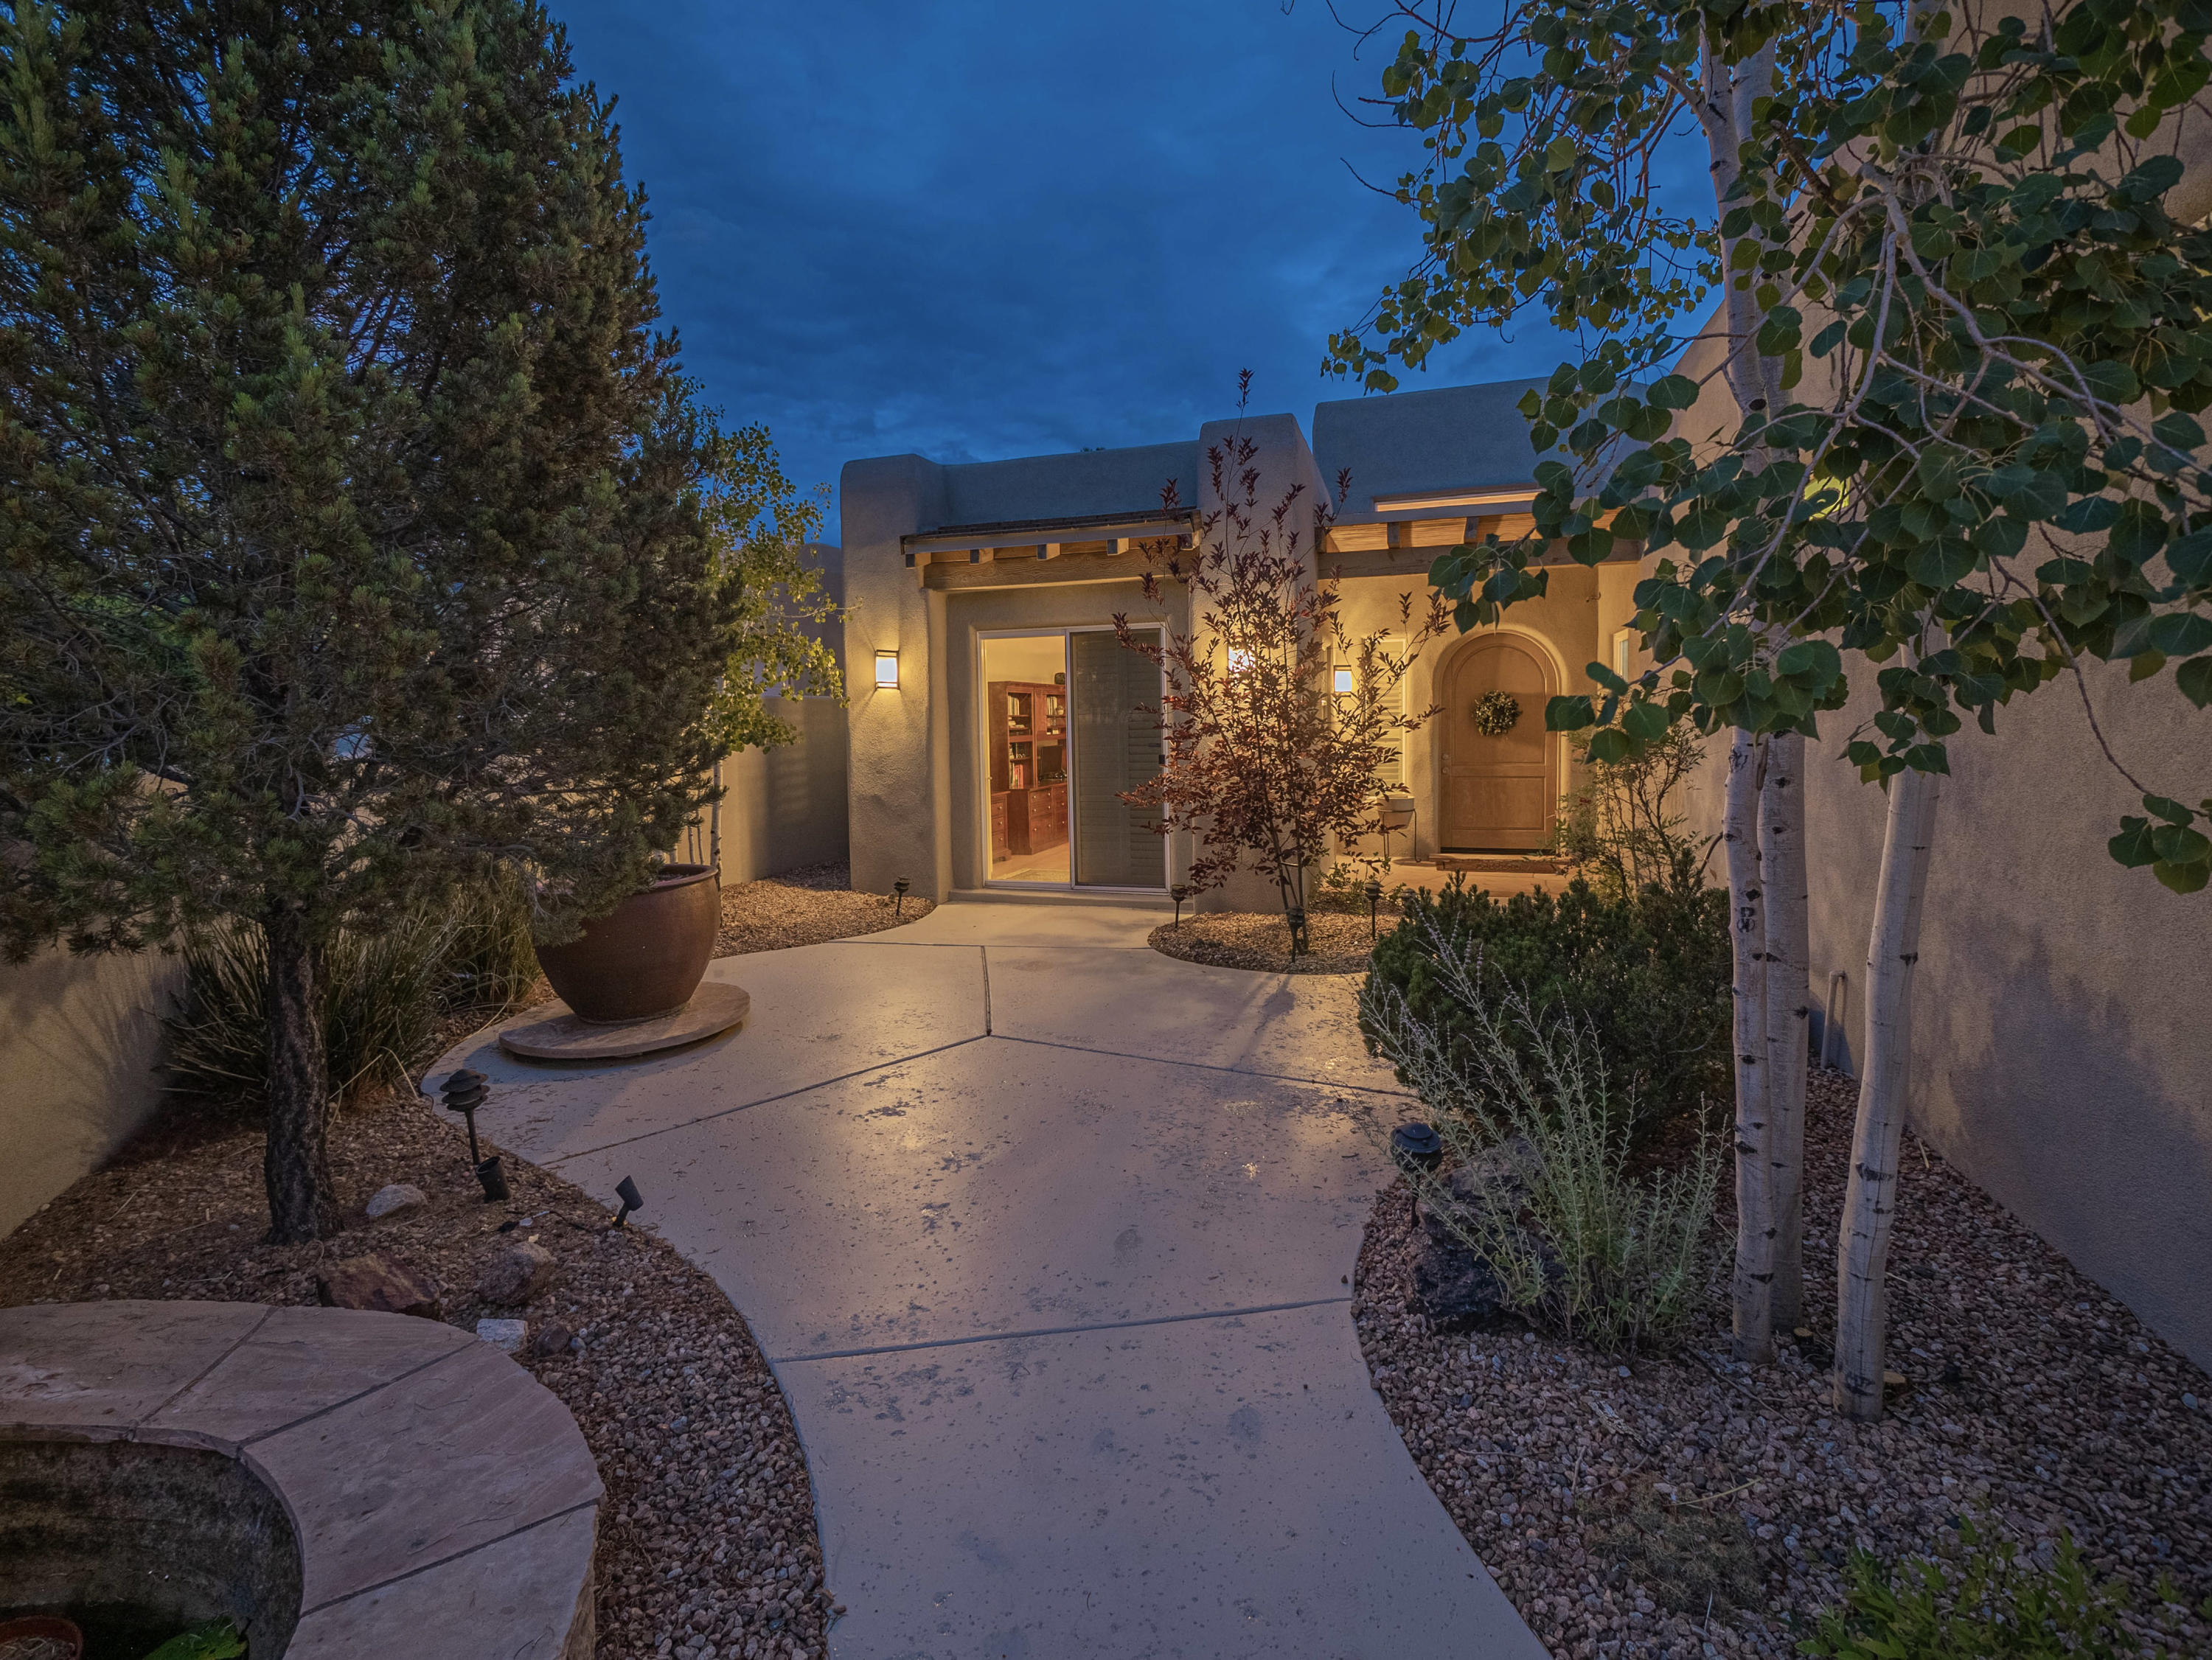 HIGH DESERT LIVING AT IT'S FINEST!! Open the gate to the private courtyard with soothing cascading water fountain and enter through the custom hand carved front door. Once you cross over the threshold the WOW FACTOR transcends throughout this impeccably kept home. The original owner wasthe builder himself (Starbright Custom Homes) and you can certainly tell with the extra attention to detail in every room. This 3-bedroom single level Contemporary Southwest style home offers incredible features to include a stacked stone waterfall upon entry, large great room with GORGEOUS MOUNTAINVIEWS and beeswax fireplace, absolutely amazing kitchen with cherry wood cabinets and floating drawers.